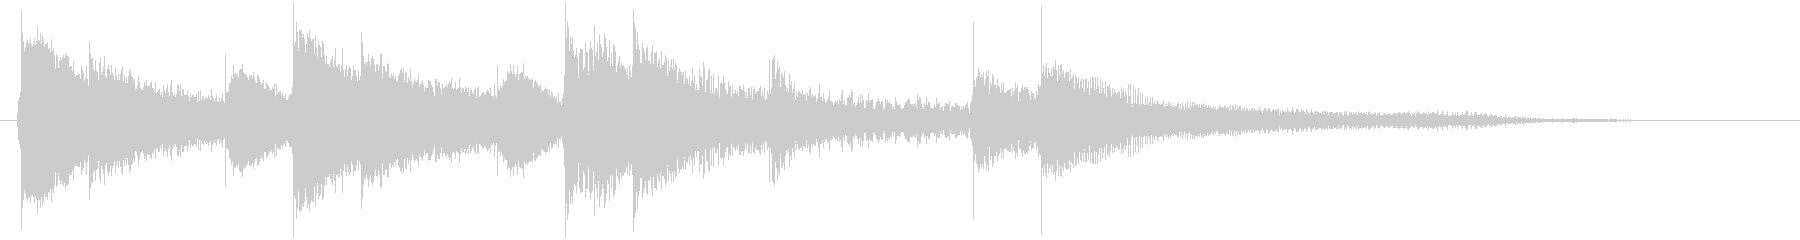 Cute and simple scene change jingle for piano's unreproduced waveform